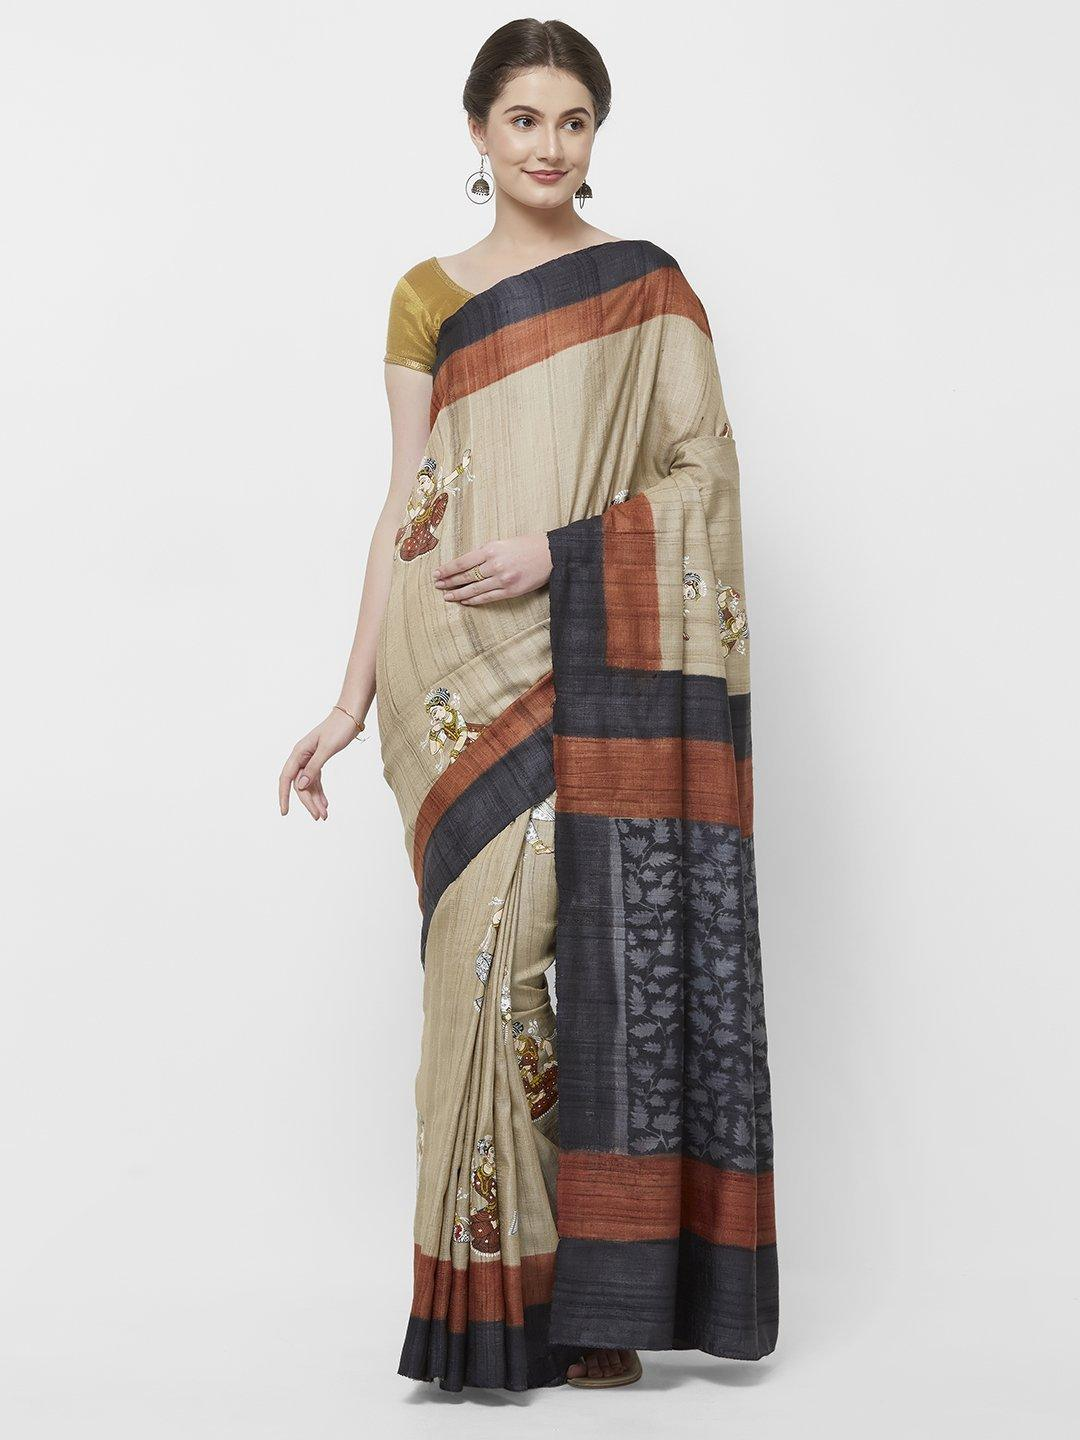 CraftsCollection.in -Beige Tussar Silk Saree with Handpainted Pattachitra motifs